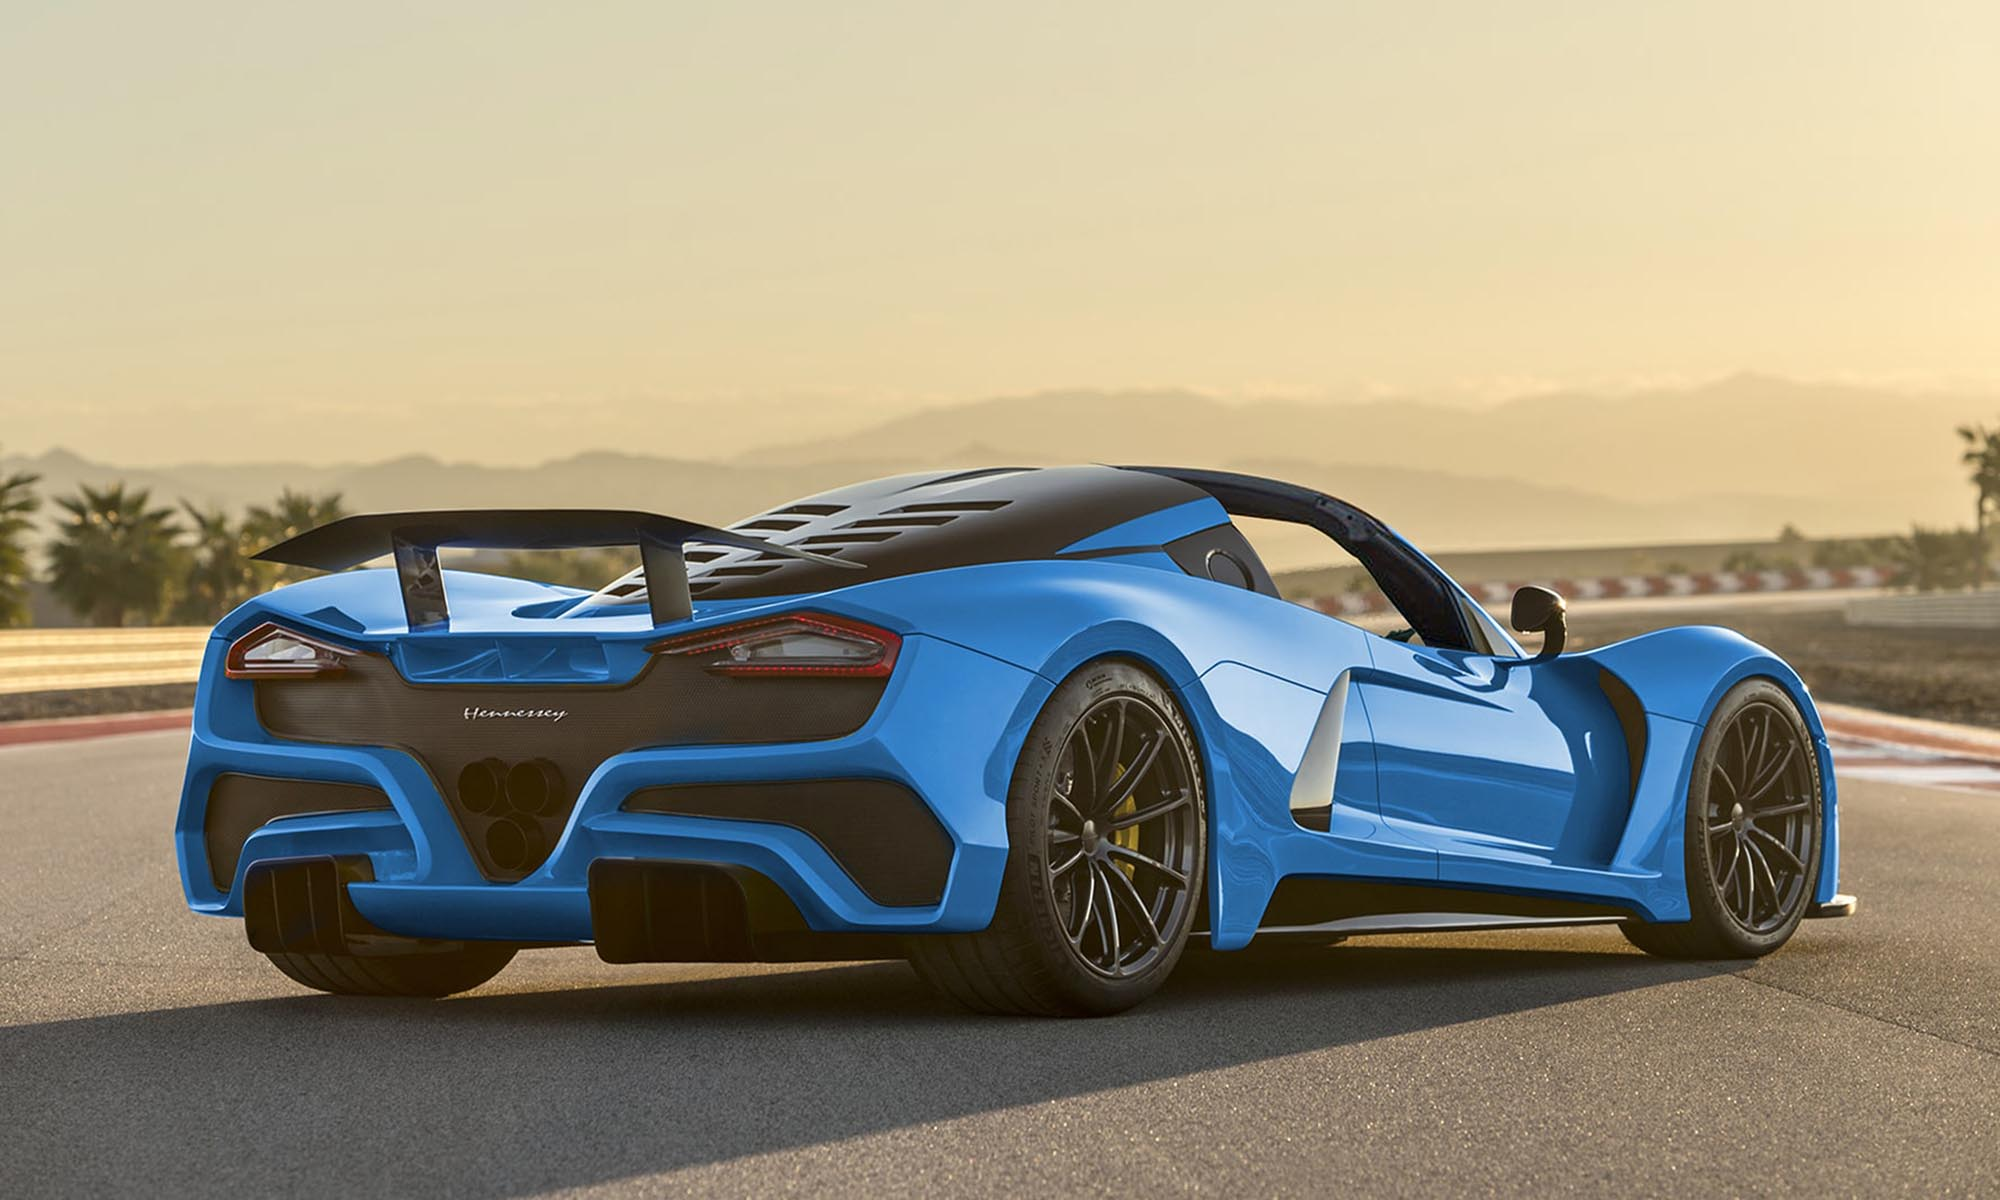 Hennessey Venom F5, Sports Car, Luxury car, Top Speed, YouTube, Video, high performance, vehicle, top car, fastest car,